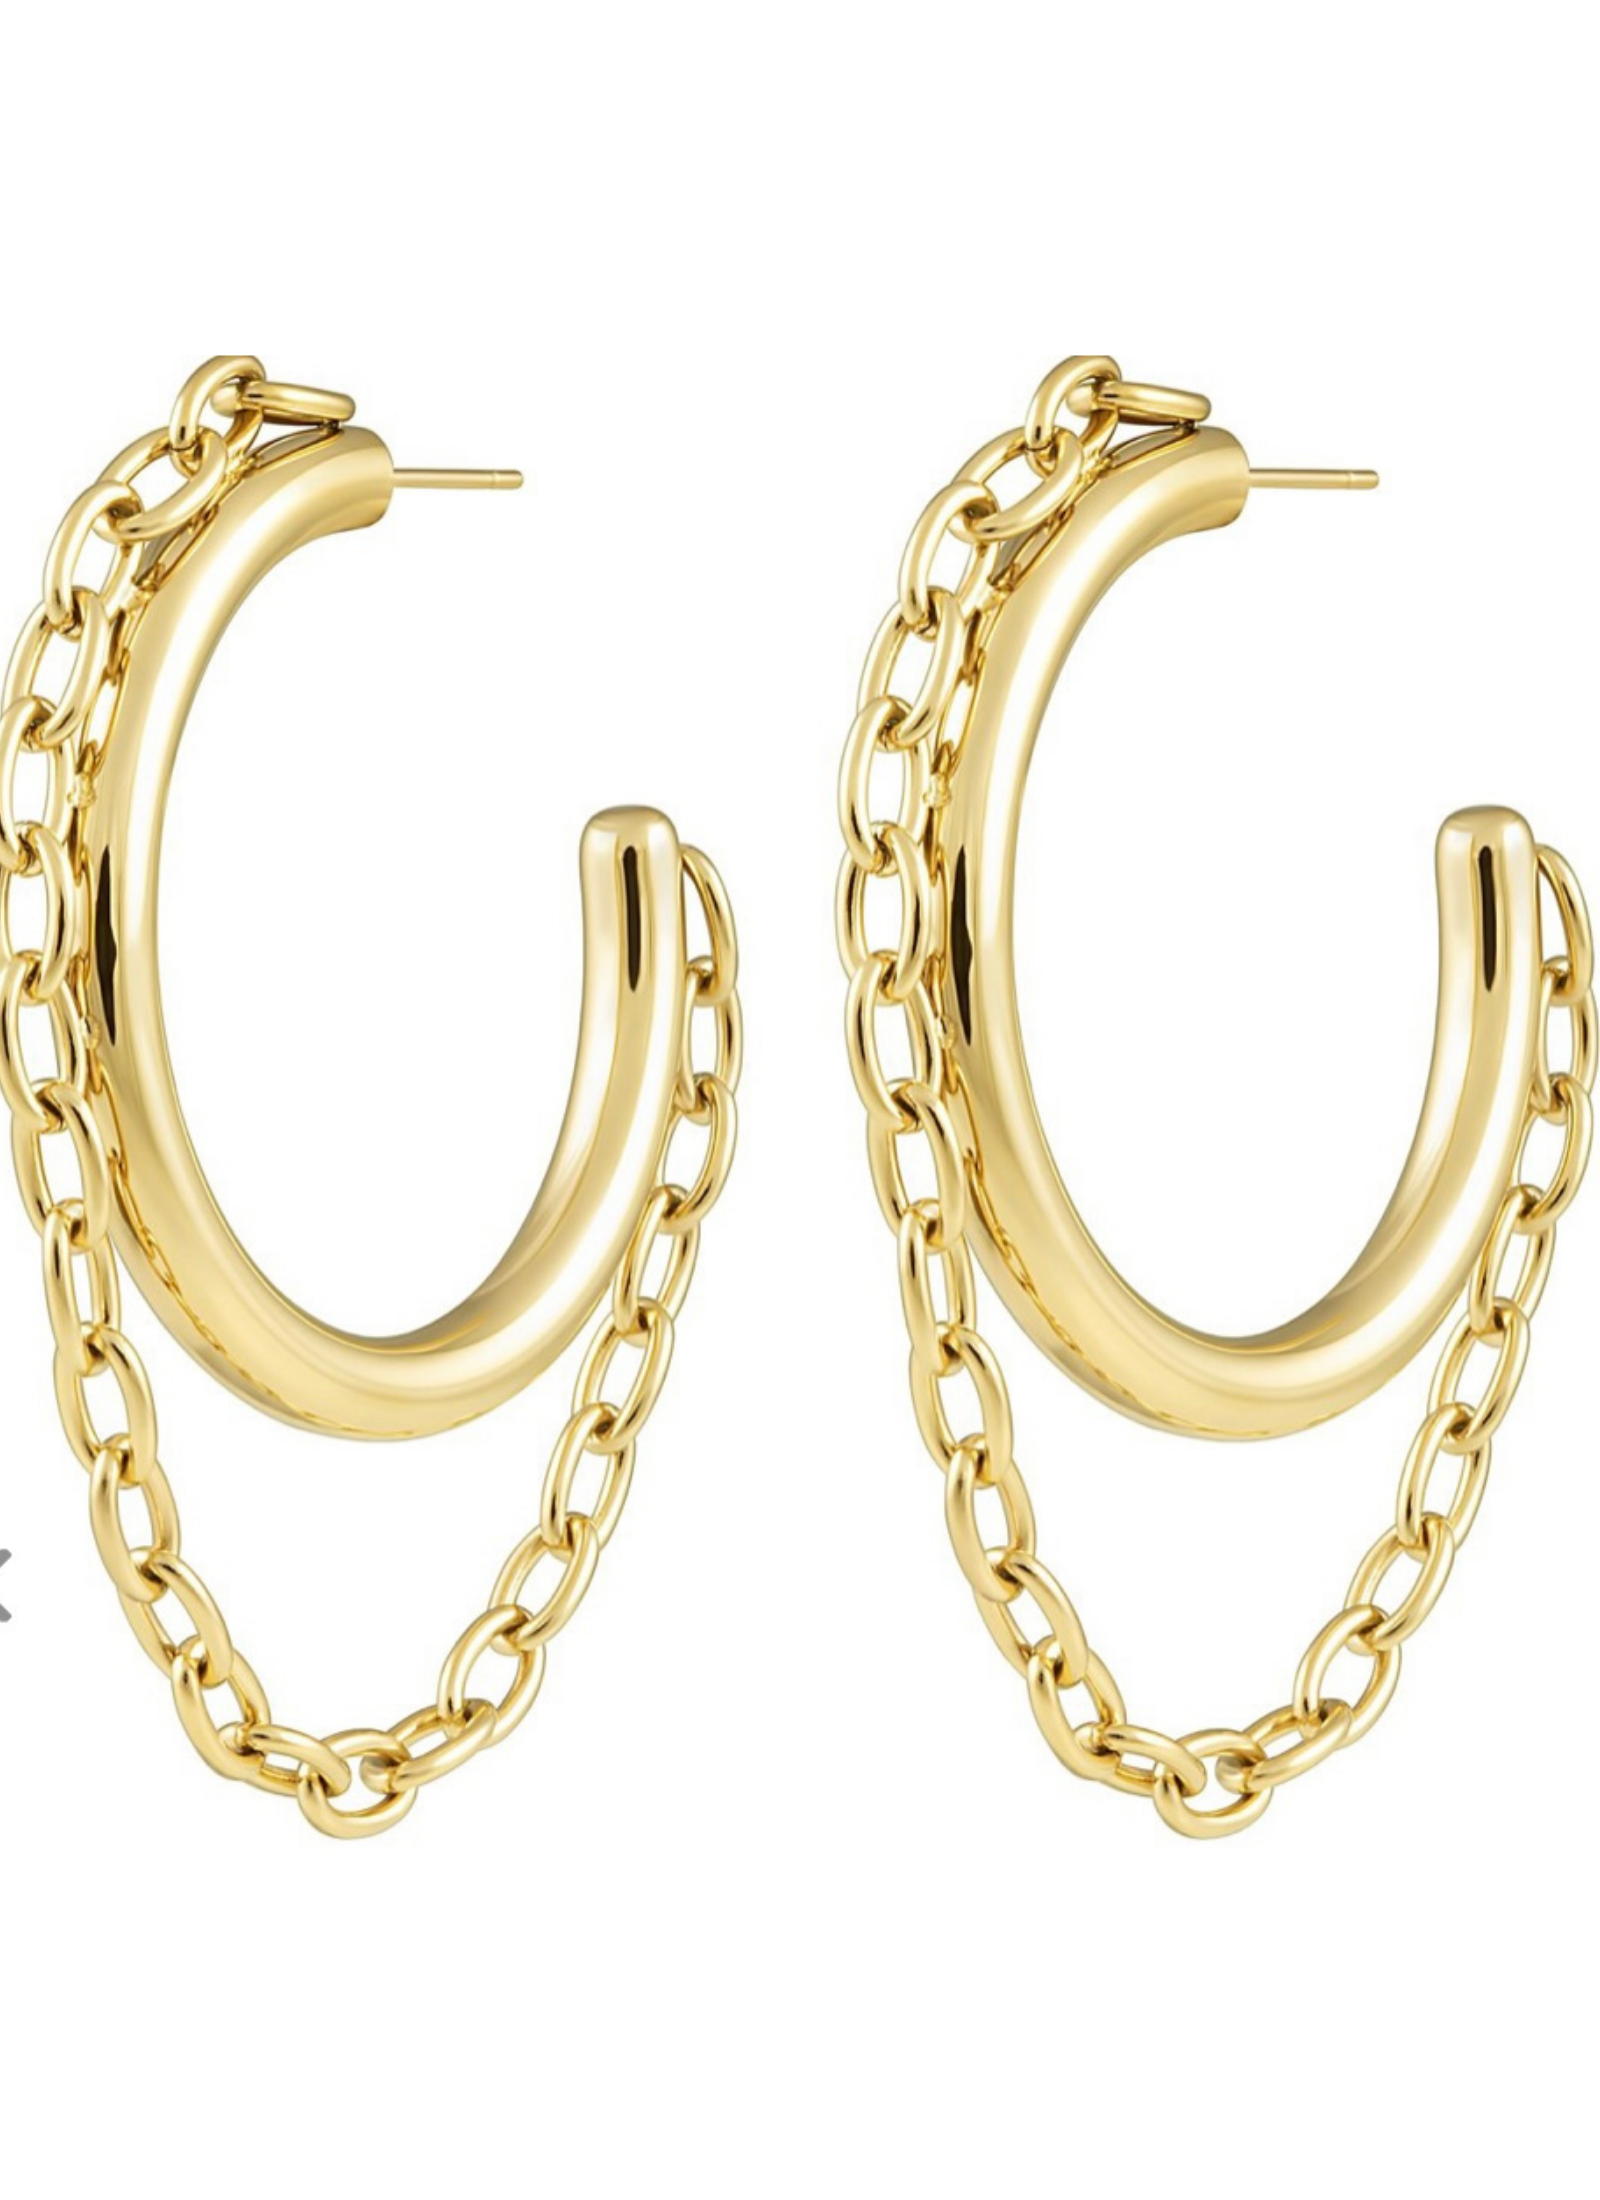 Gianna Chain Gold Hoops